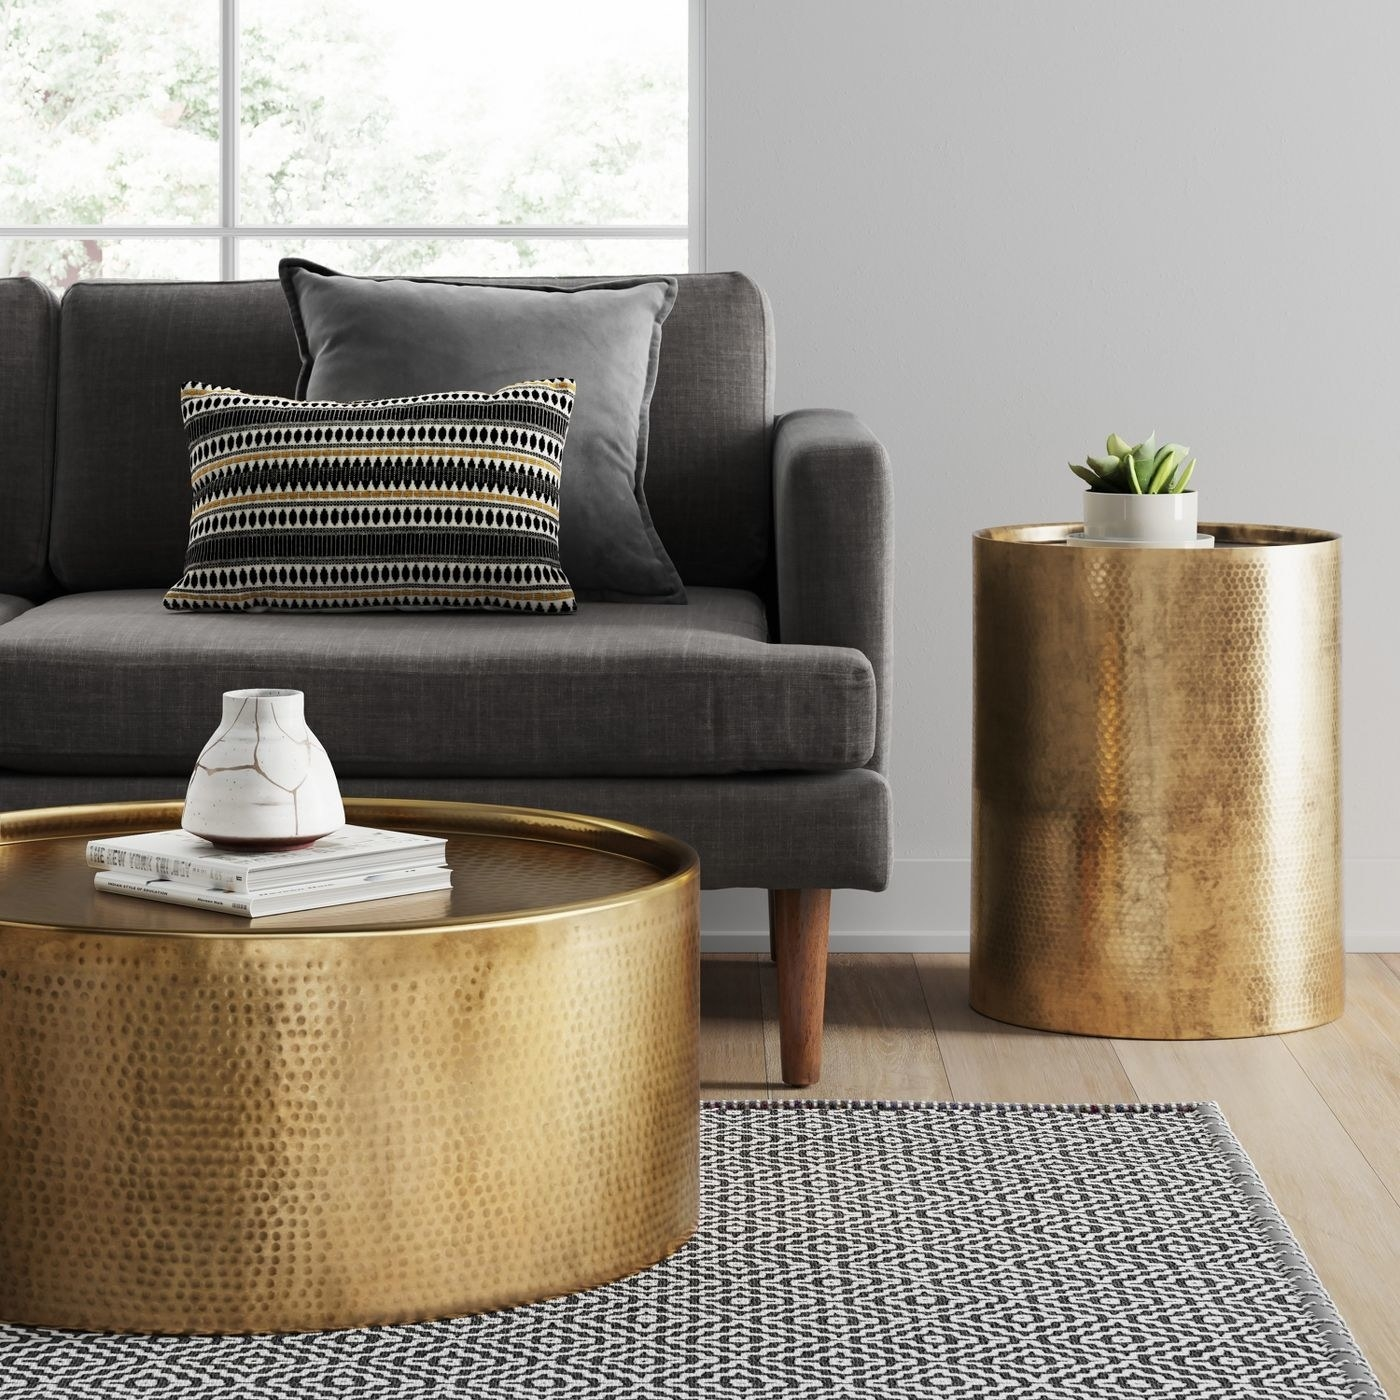 gold cylinder drum accent table with a small plant on top, next to a couch and gold coffee table